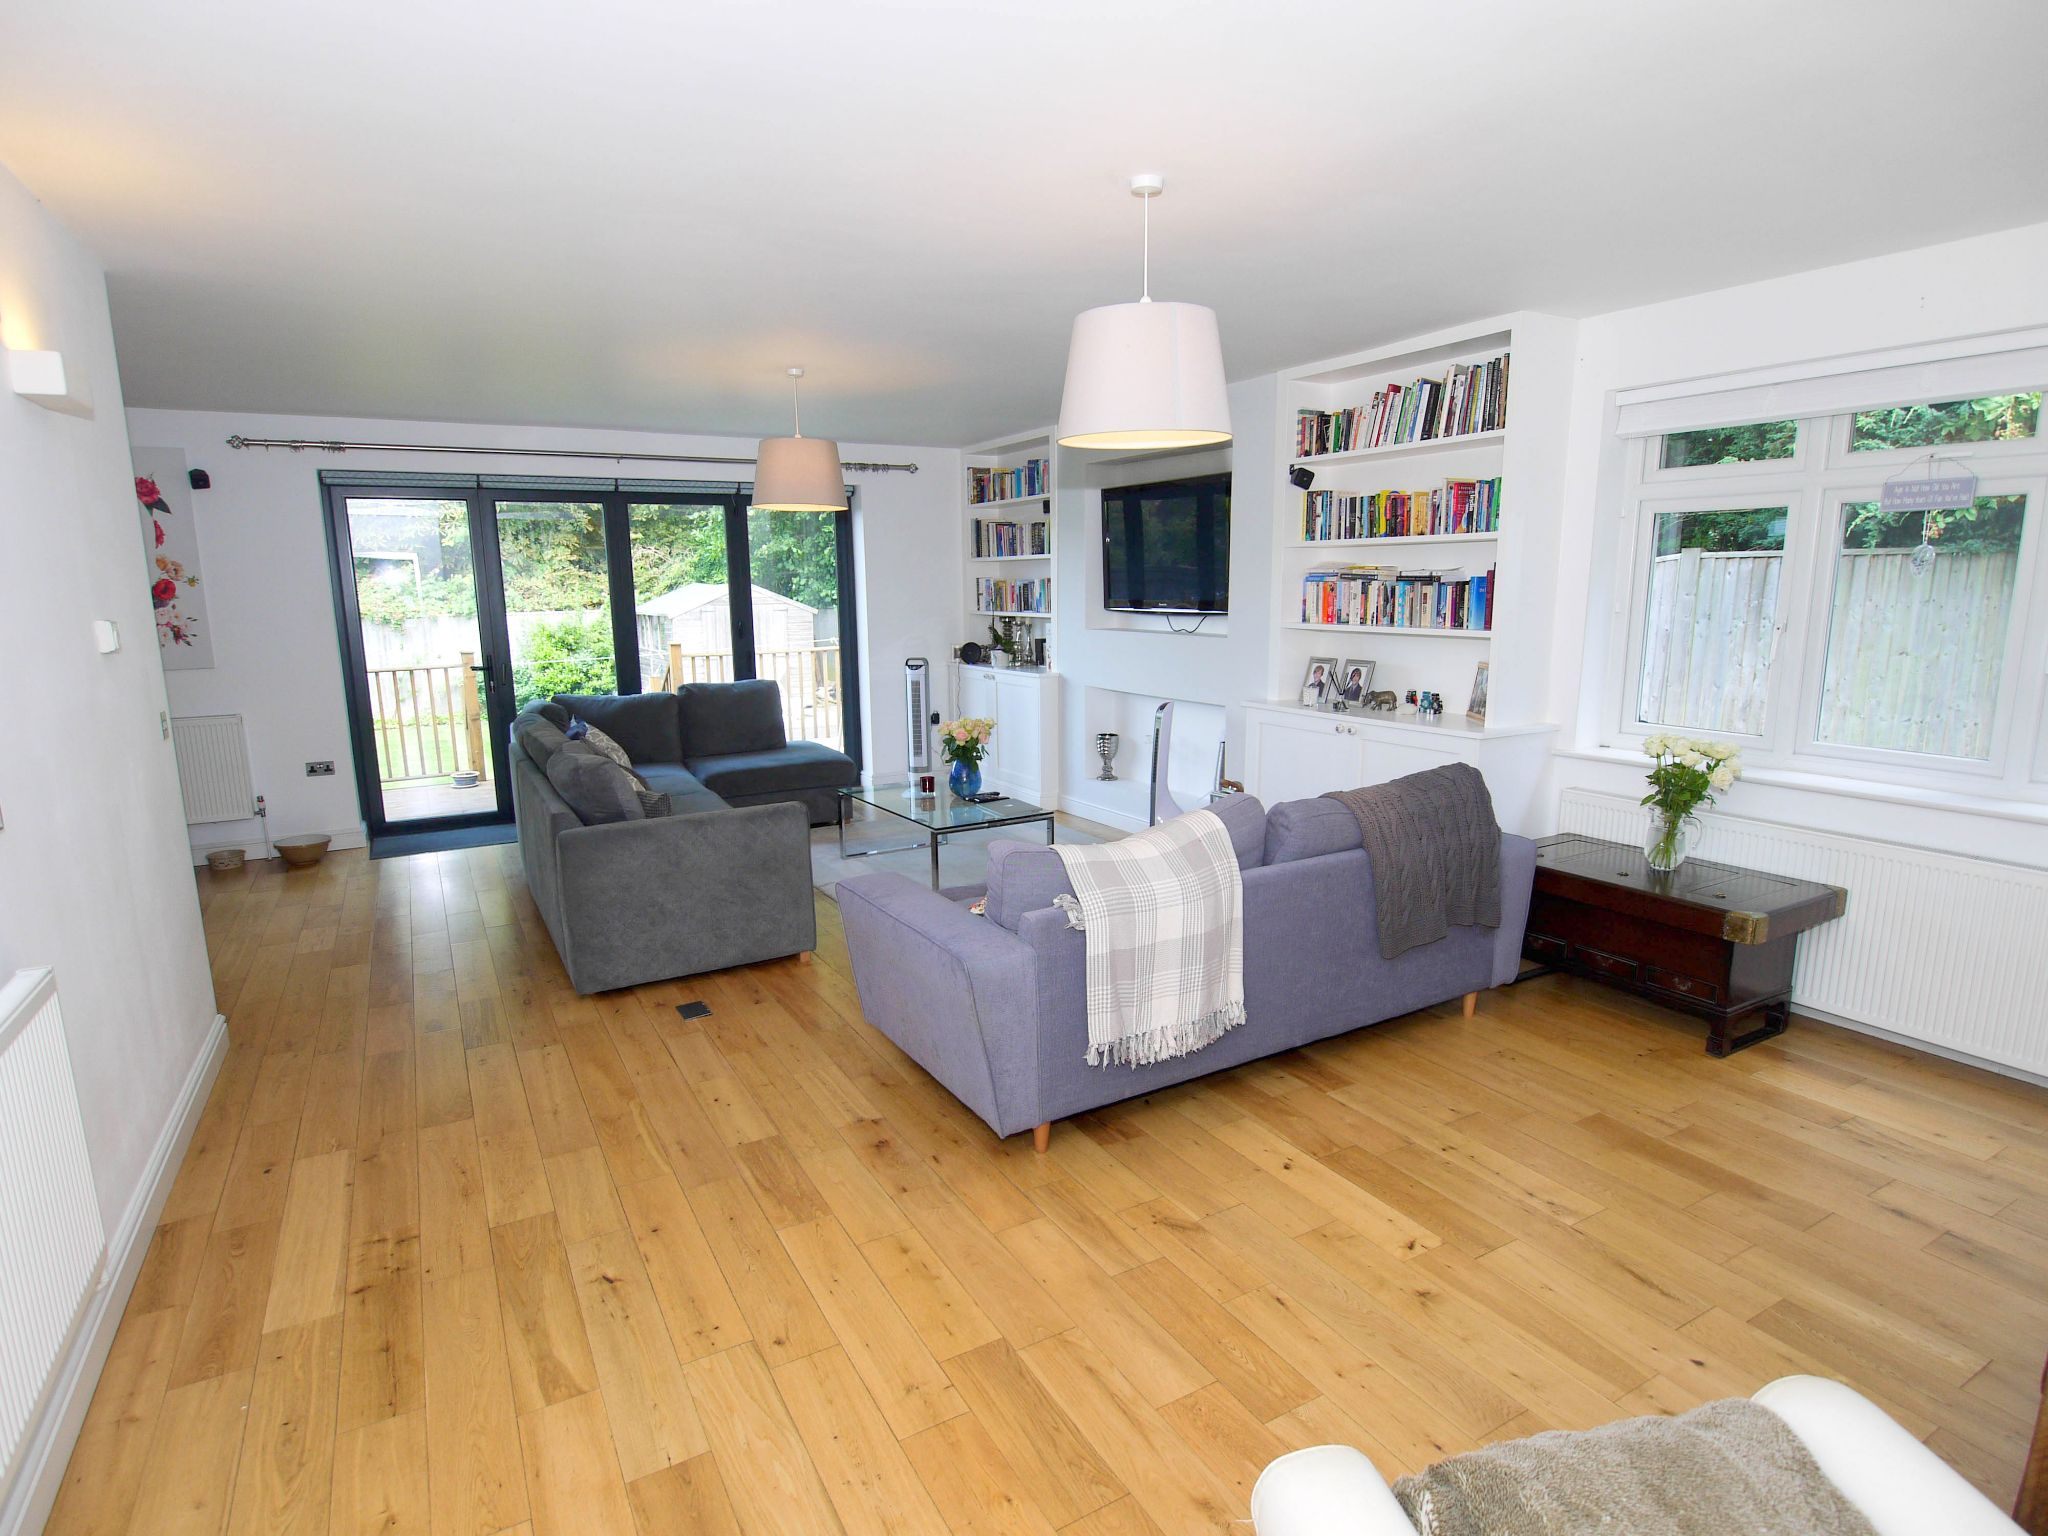 5 bedroom detached house Sold in Sevenoaks - Photograph 3